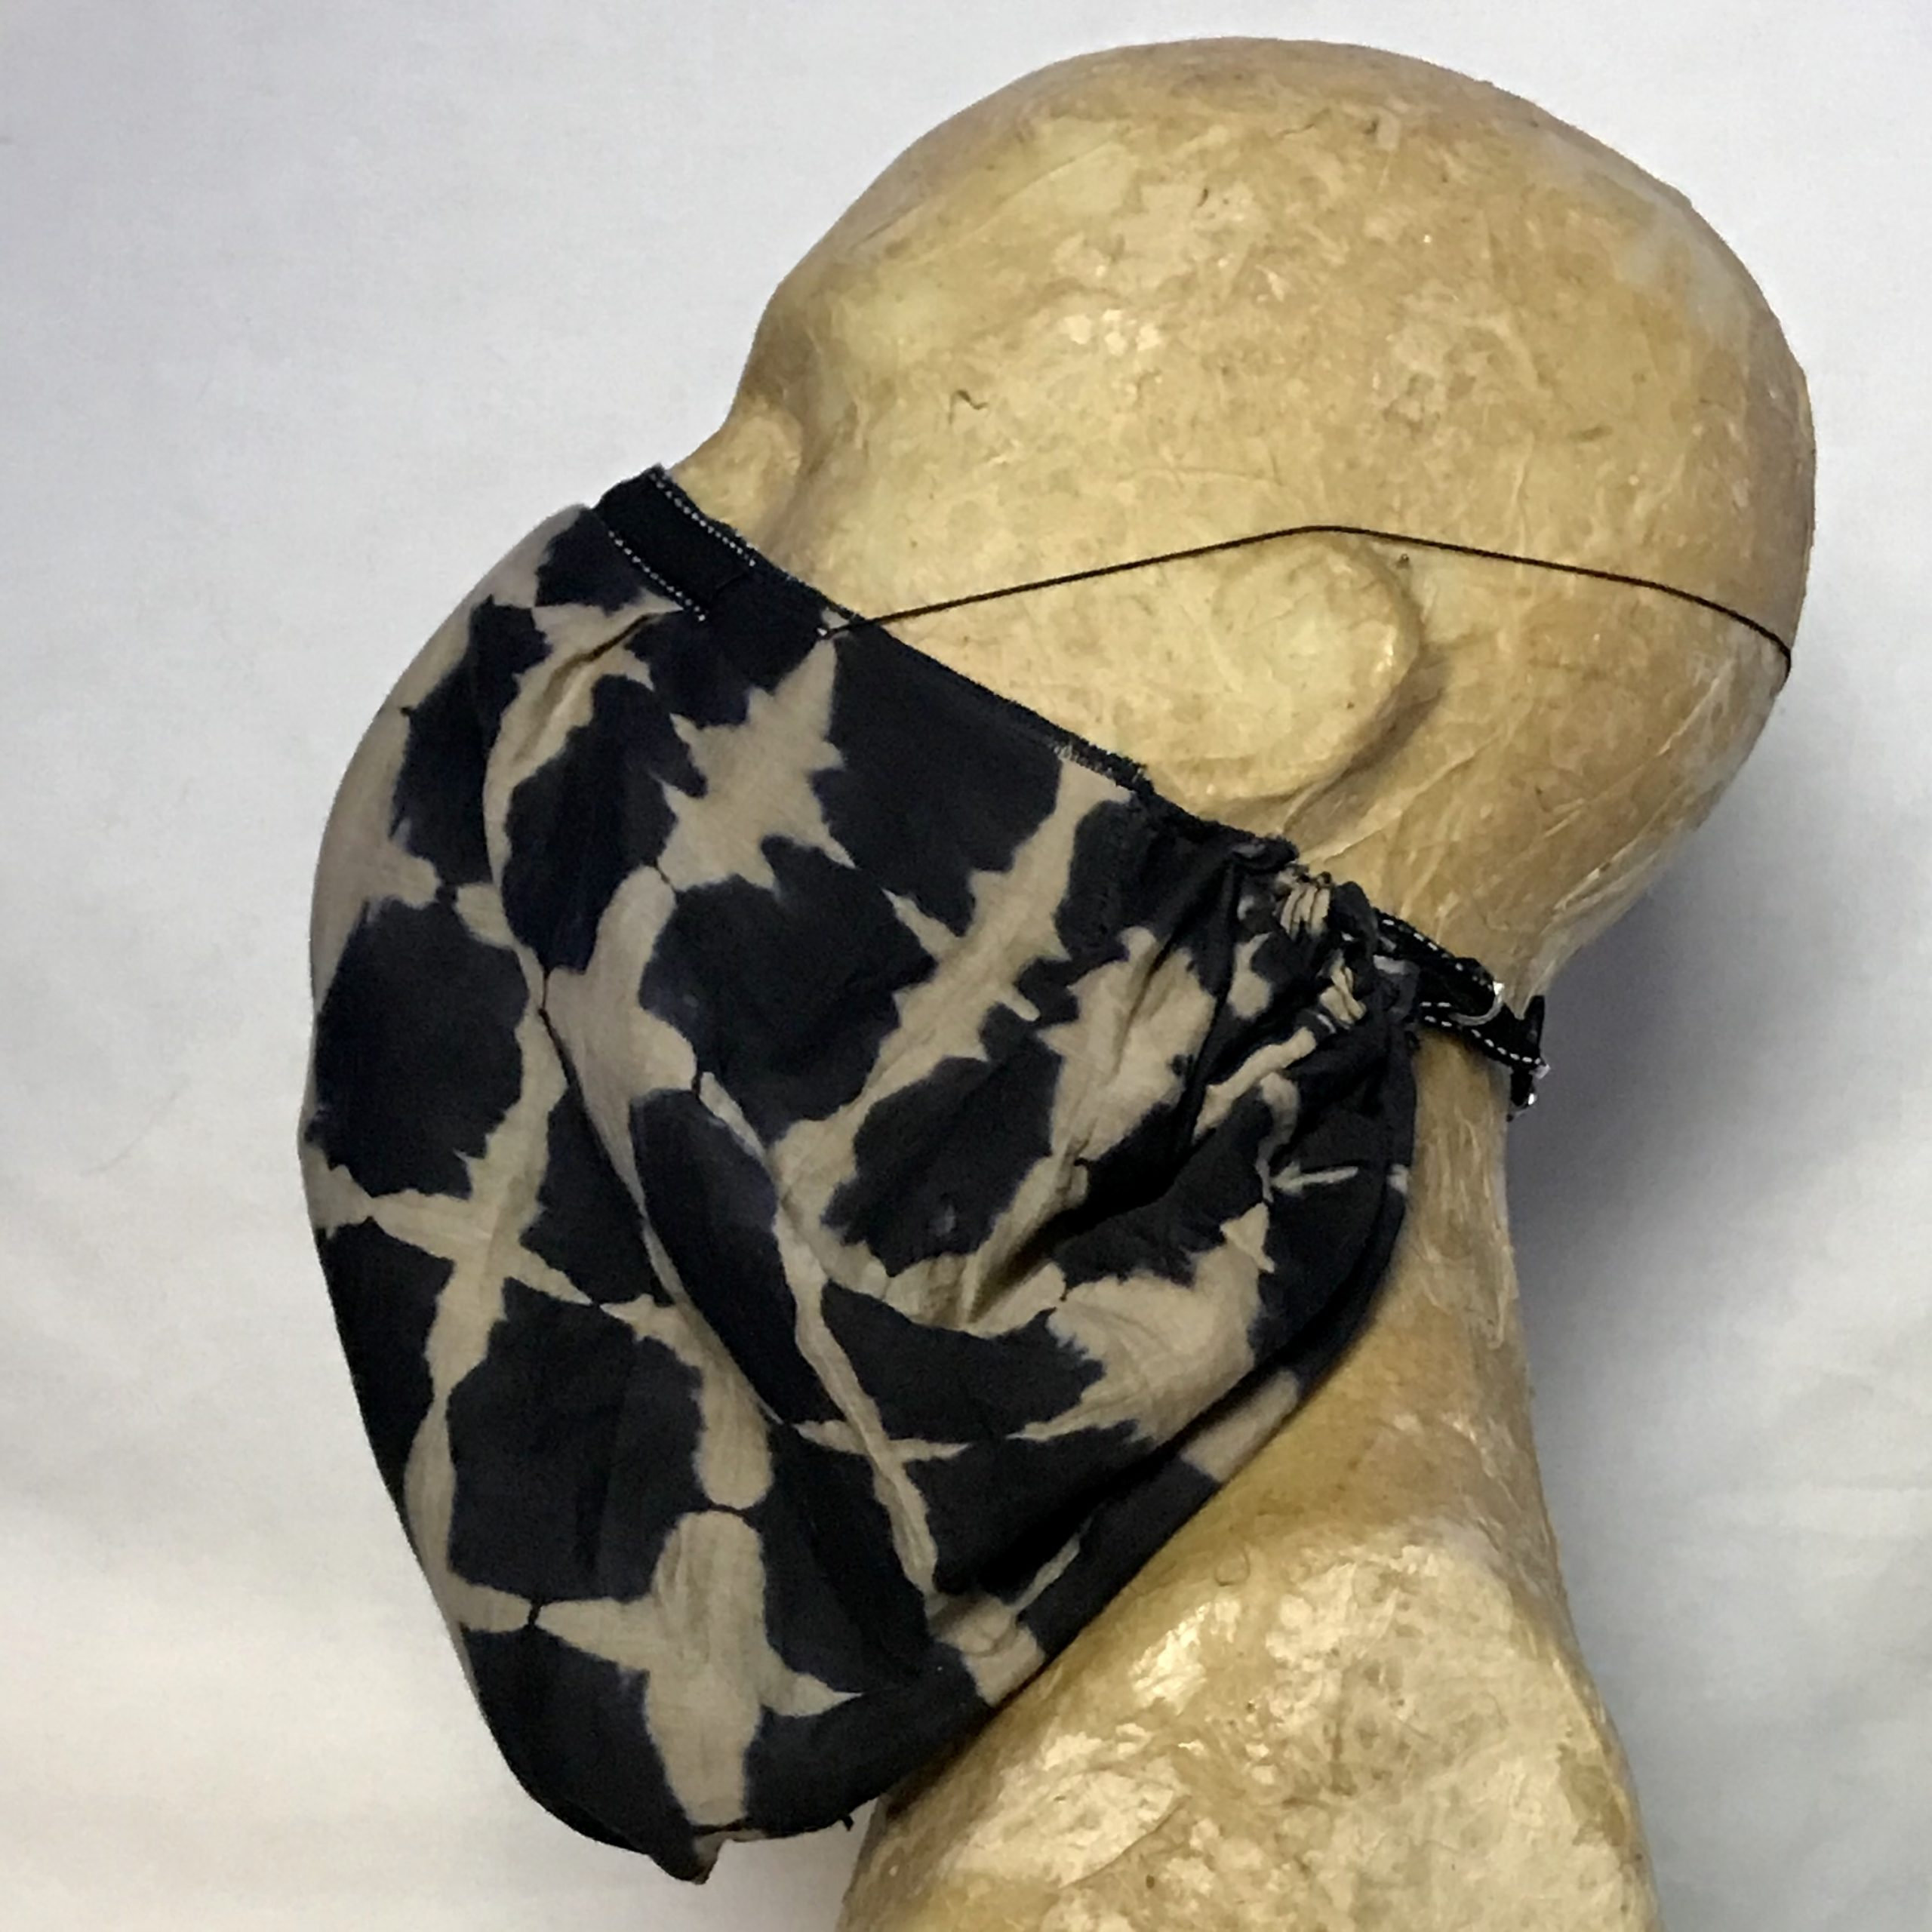 Active Airflow mask